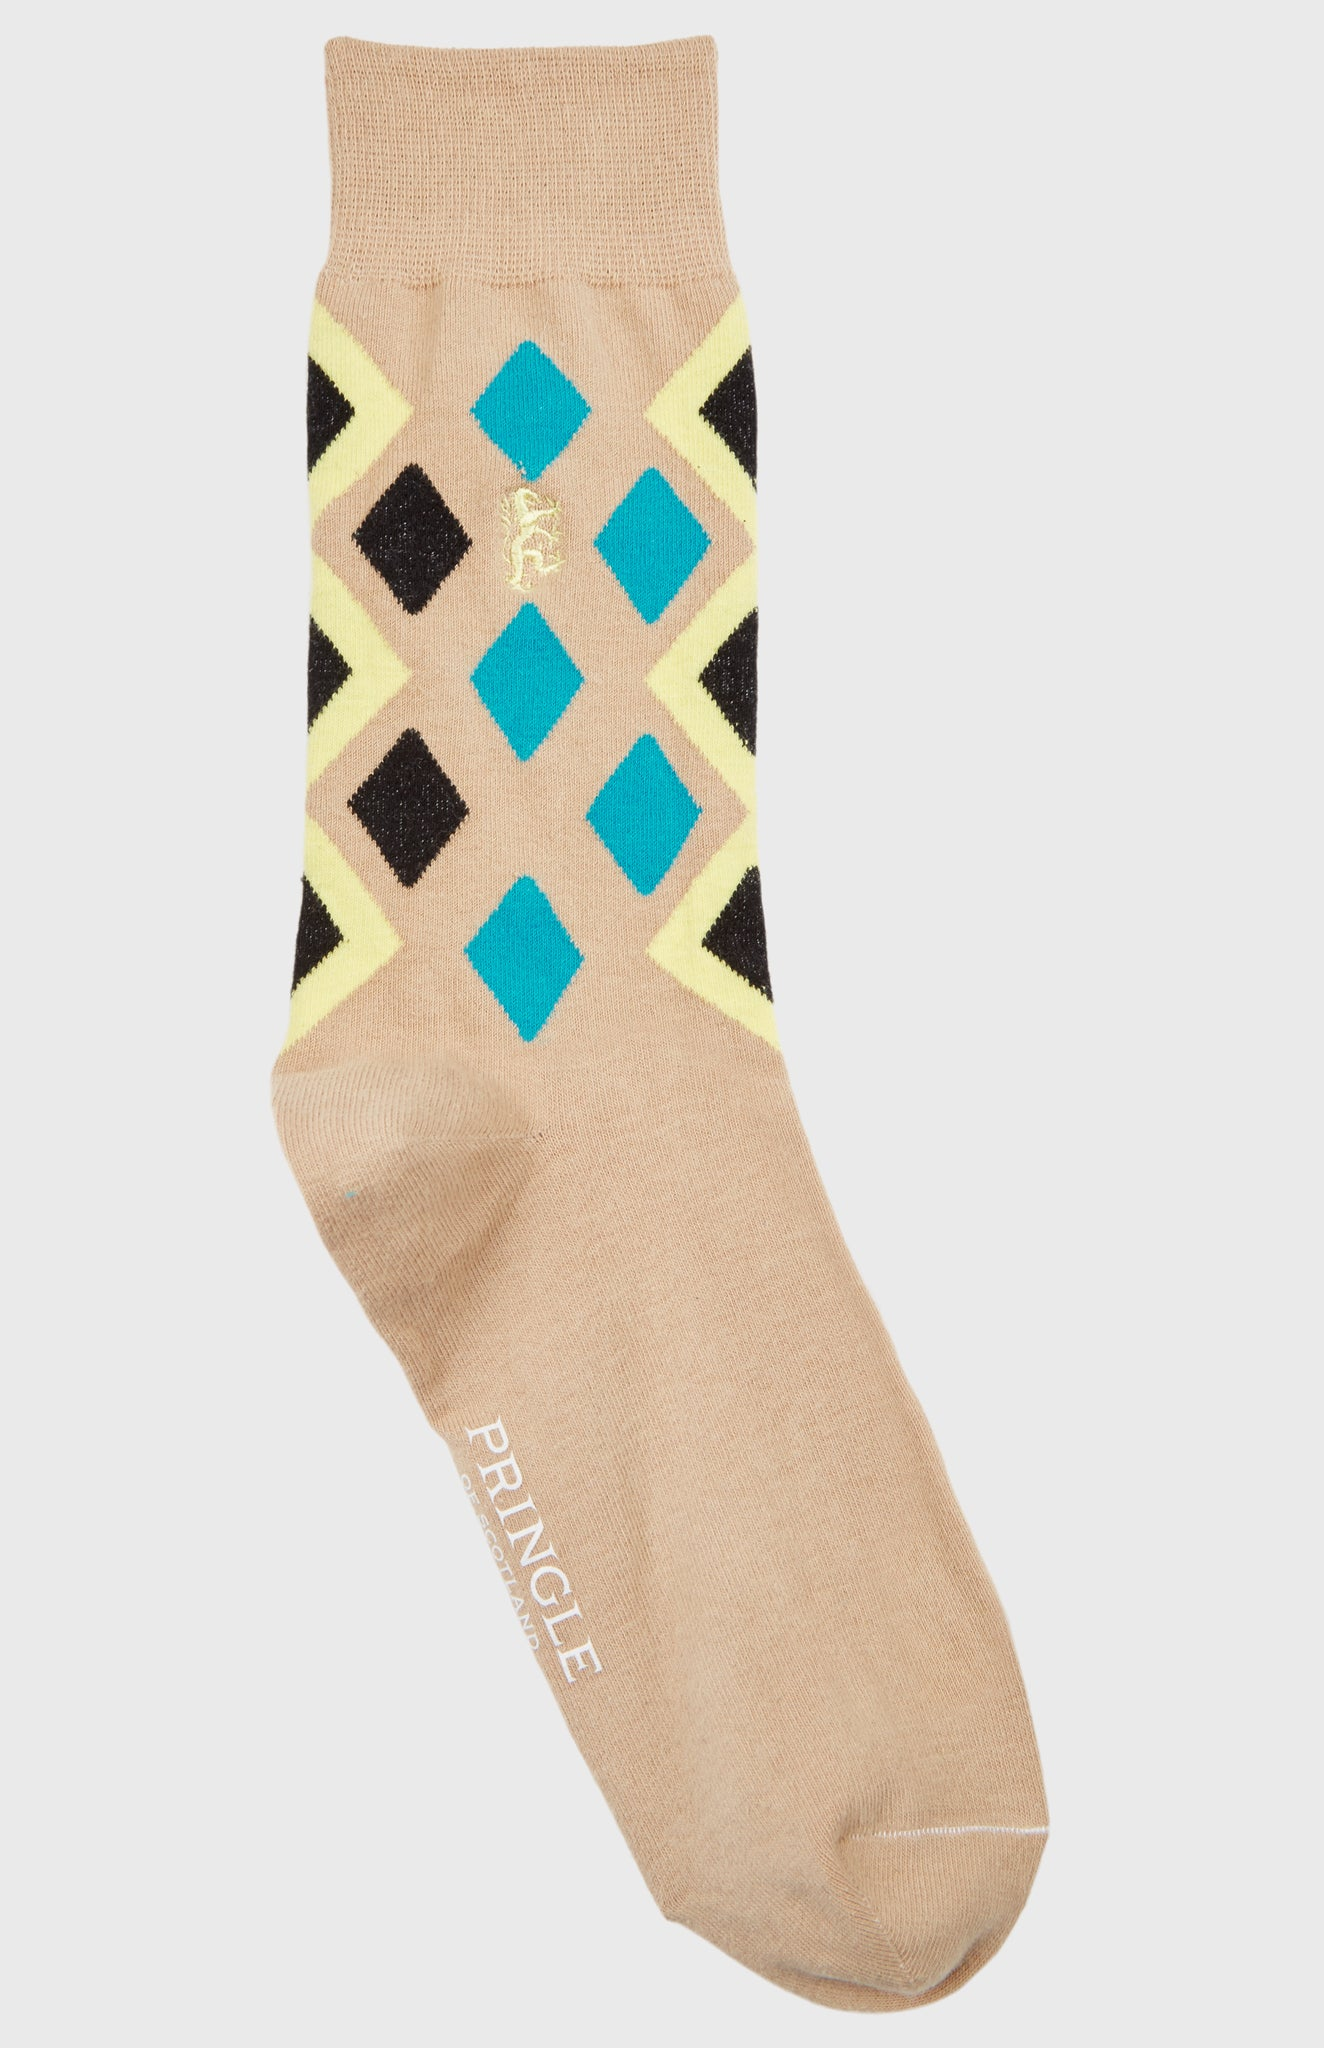 Pringle Reissued Women's Diamond Argyle Socks In Camel